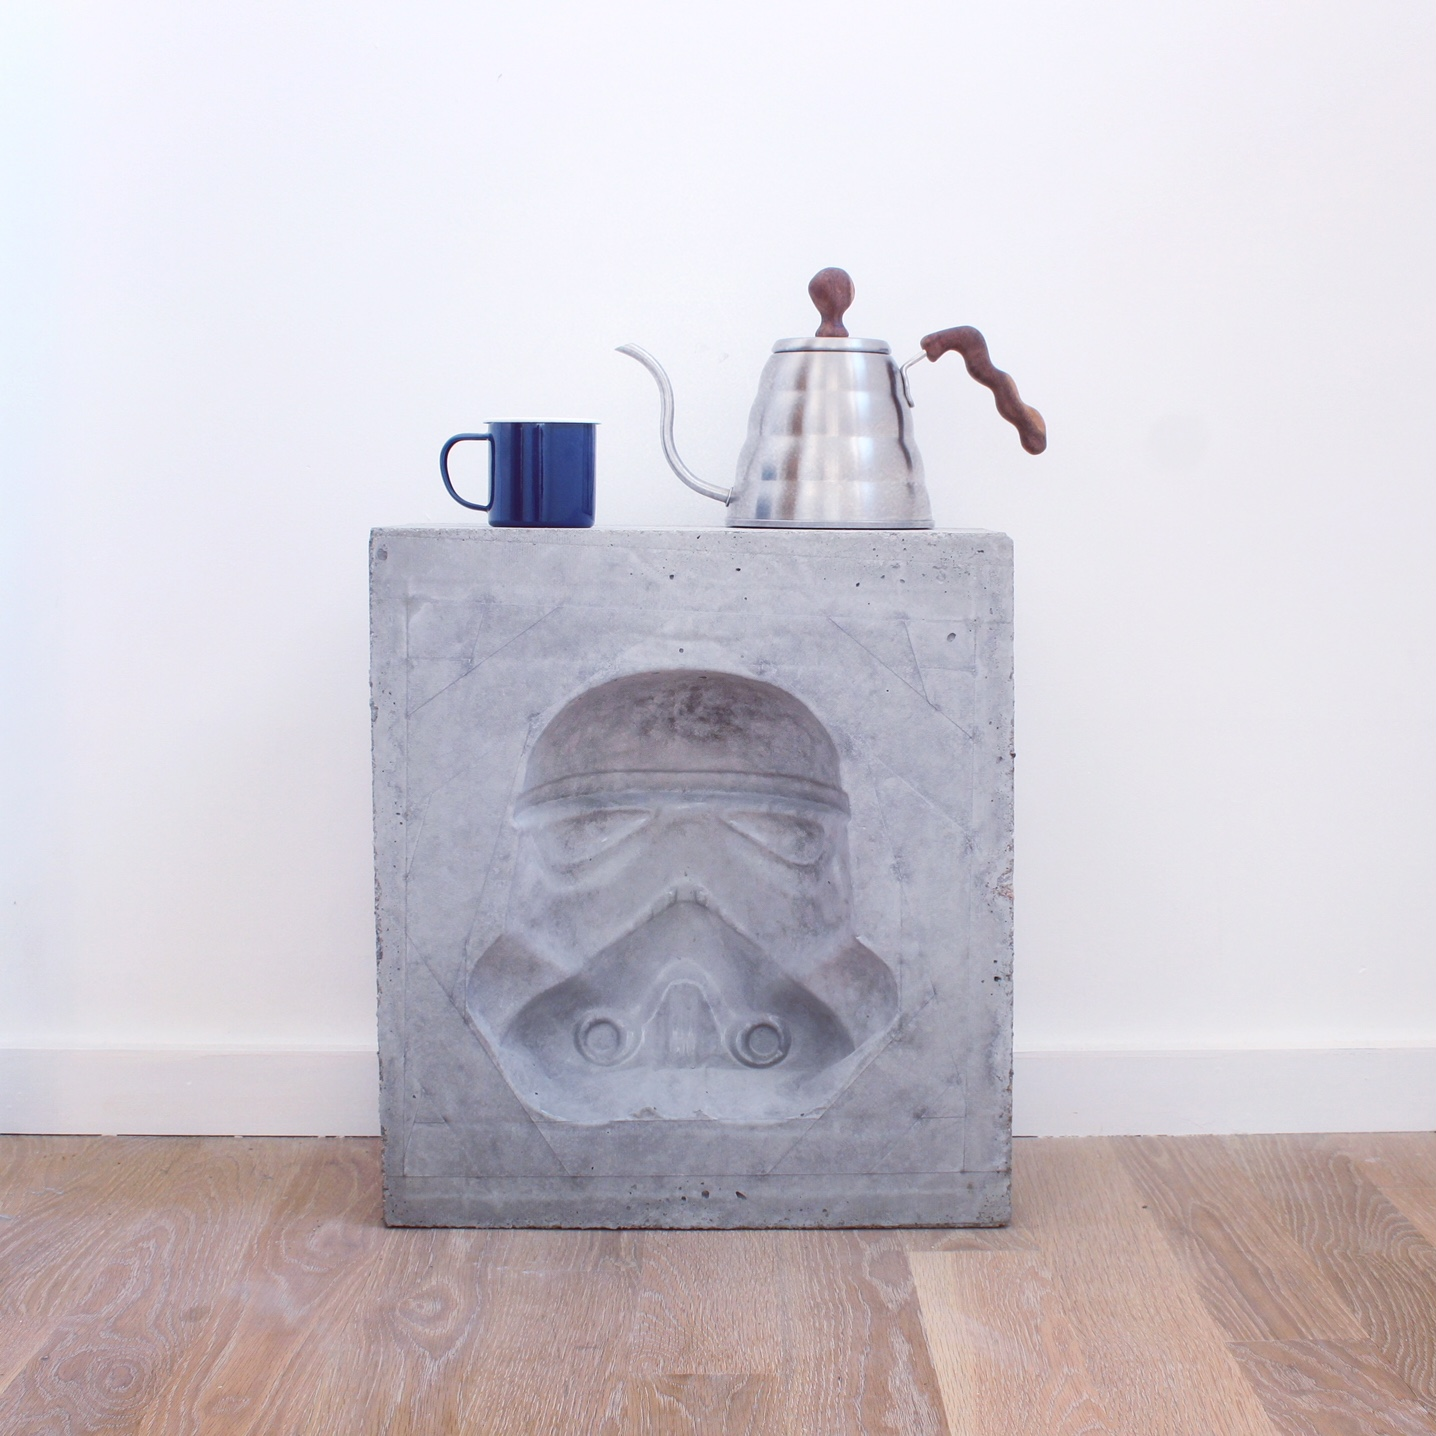 In honor of The Last Jedi, Ben Uyeda puts all of HomeMade Modern's Star Wars DIY projects into a single post. For more information go to HomeMade-Modern.com